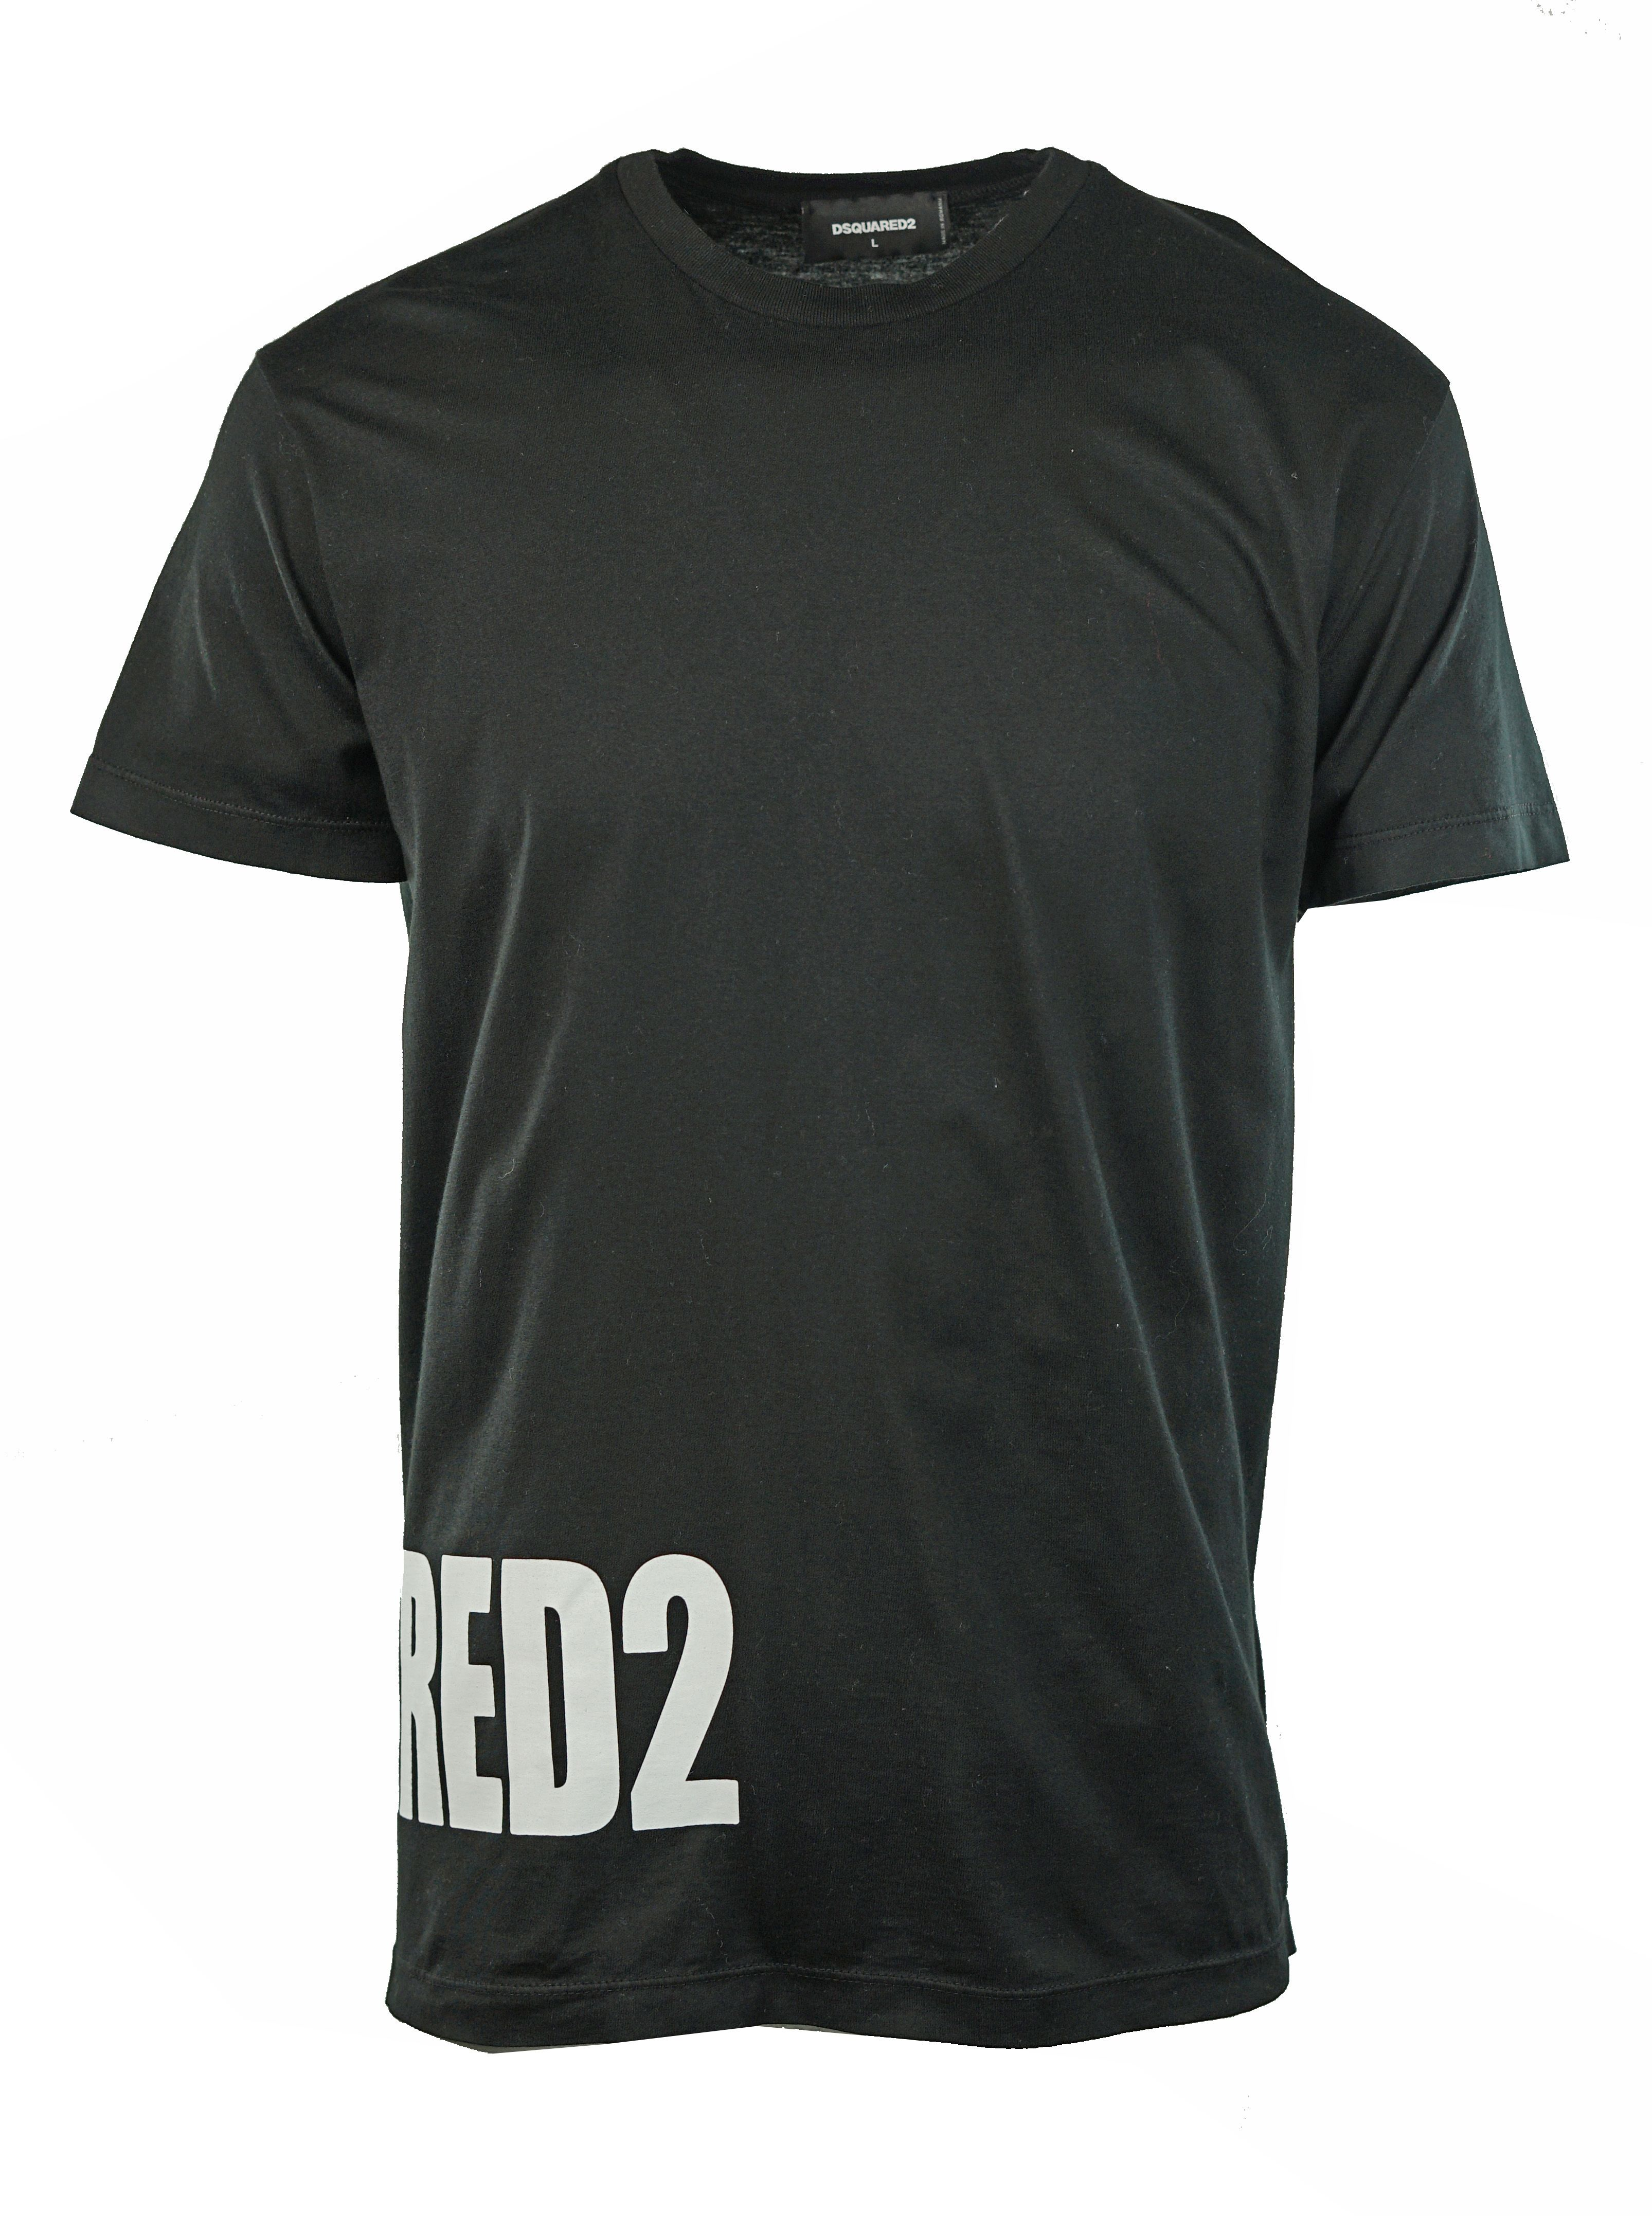 DSquared2 S74GD0463 S22427 900 T-Shirt